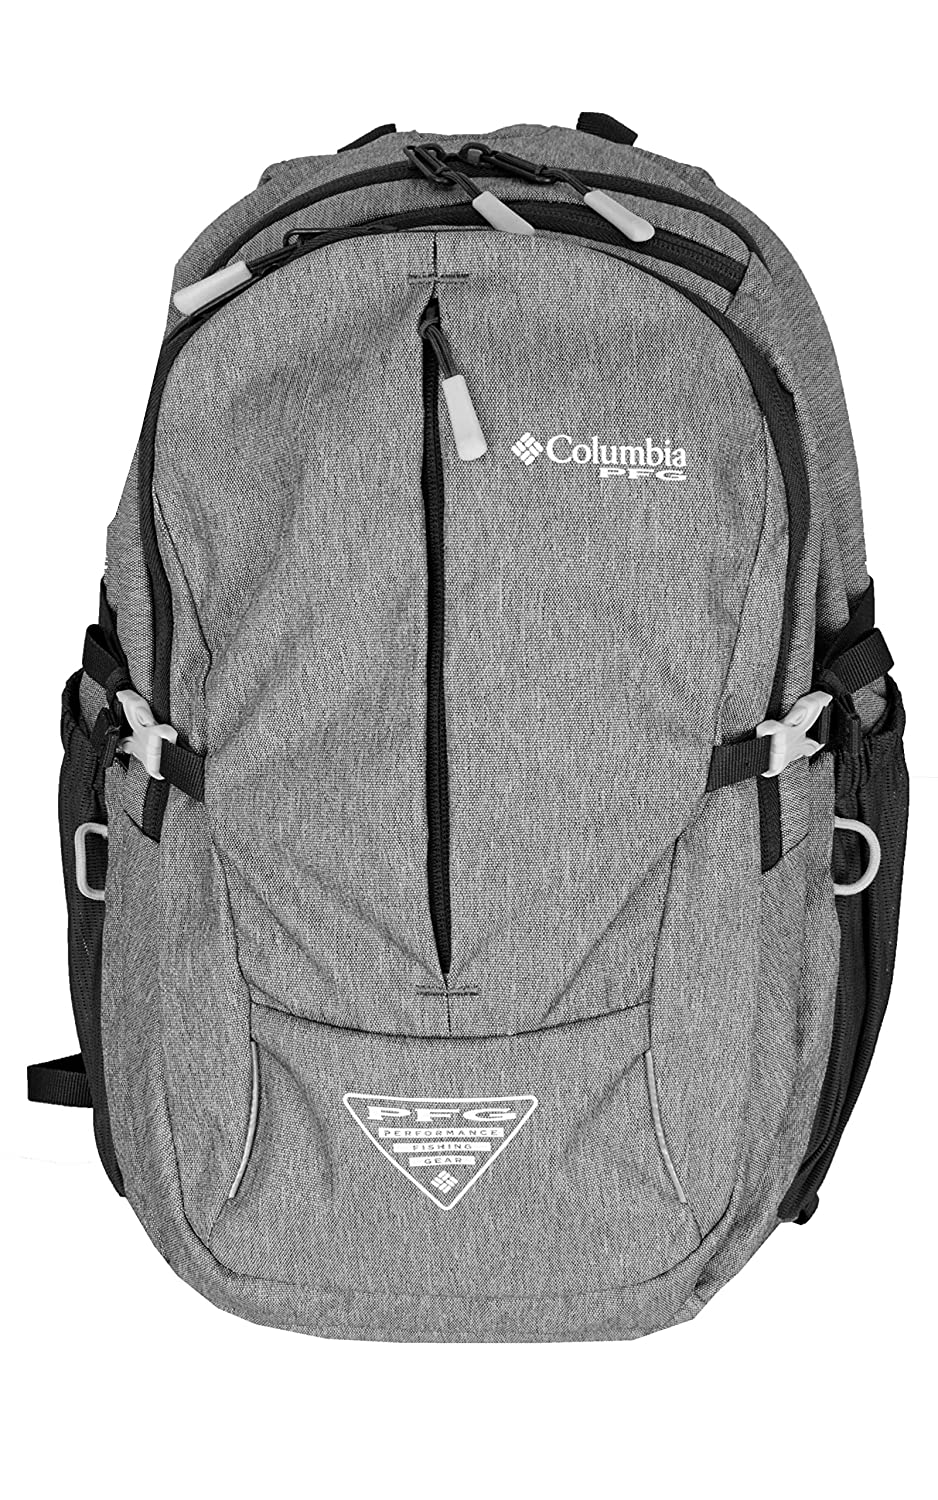 a8e352239d65 Columbia Omni Shield Pfg Eastwind Day Laptop Backpack- Fenix ...